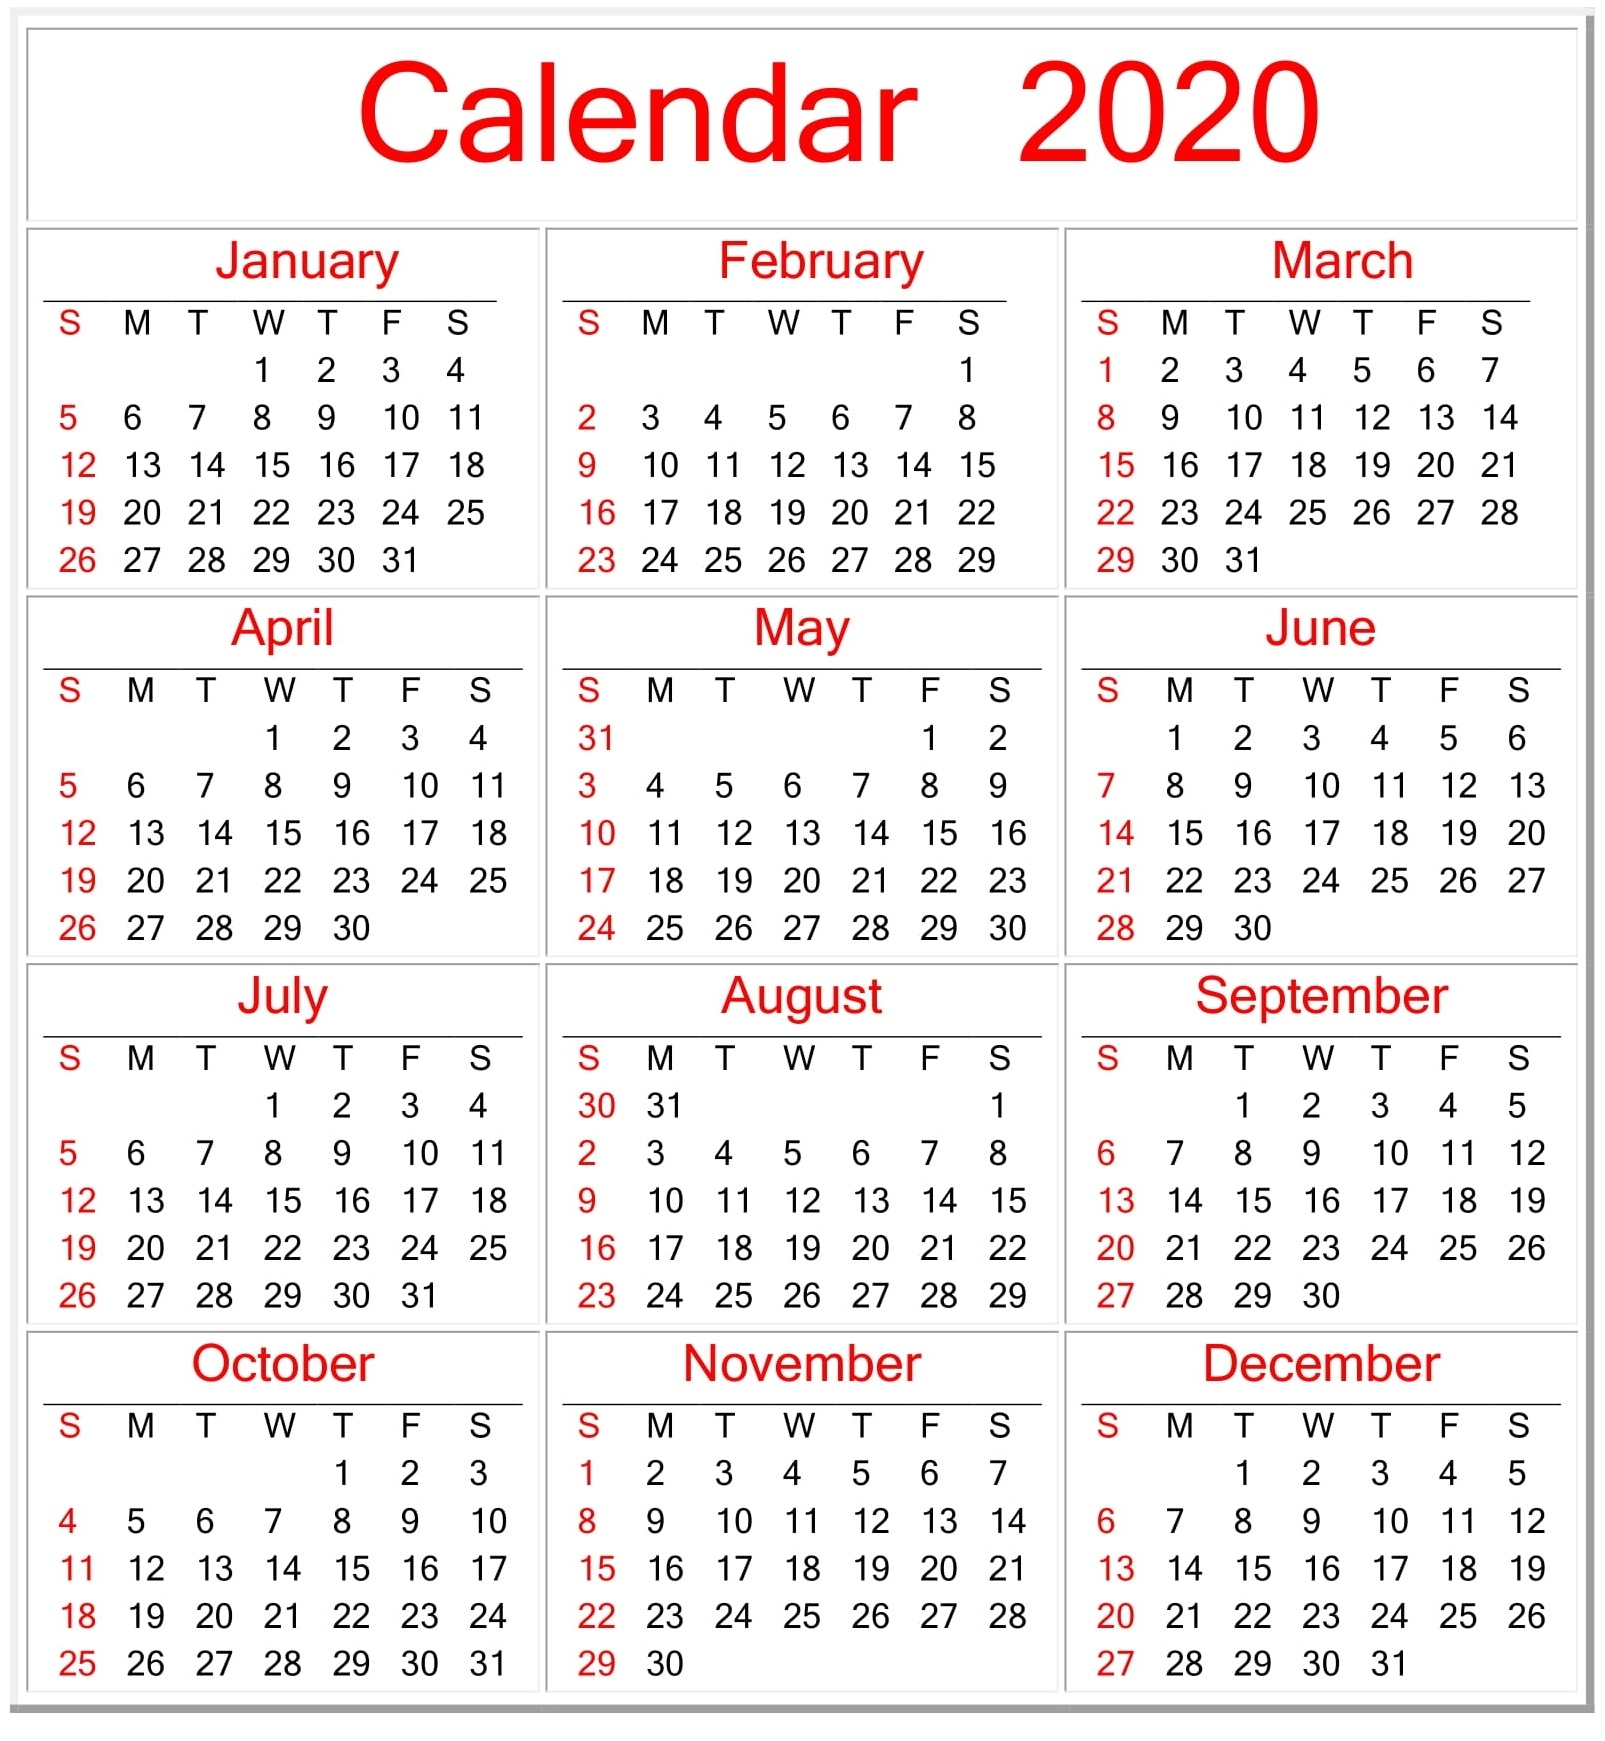 Printable Calendar 2020 Pdf Template For Landscape And Vertical with Free Printable 2020 Calendars You Don't Have To Download